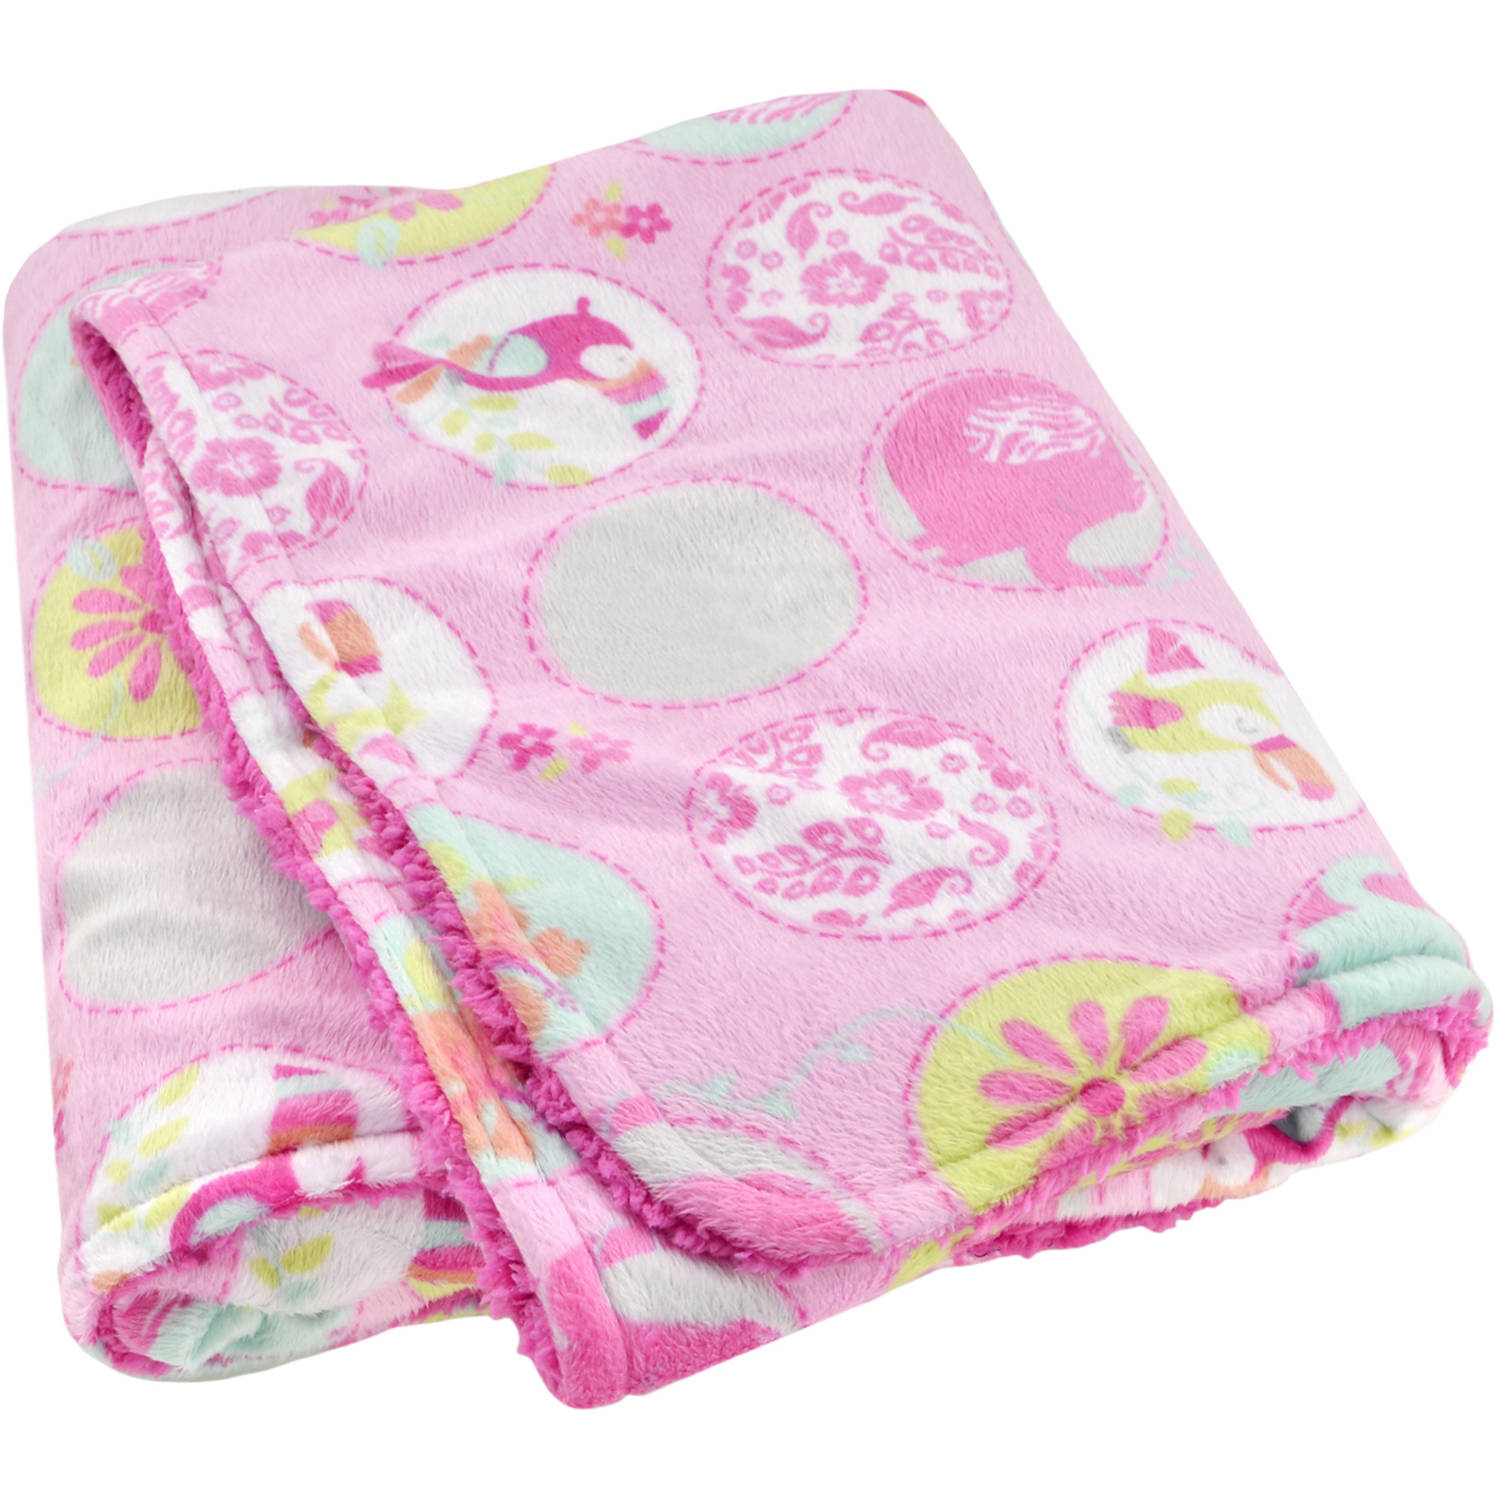 01/01/2014·01/01/2014·Video embedded· Anthony's Review -01/01/2014·01/01/2014·Video embedded· Anthony's Review -Walmart Blanket.wmv - Duration: 6:49. TheChibiFan 4,623 views. 6:49. Loading more suggestions Show more. …